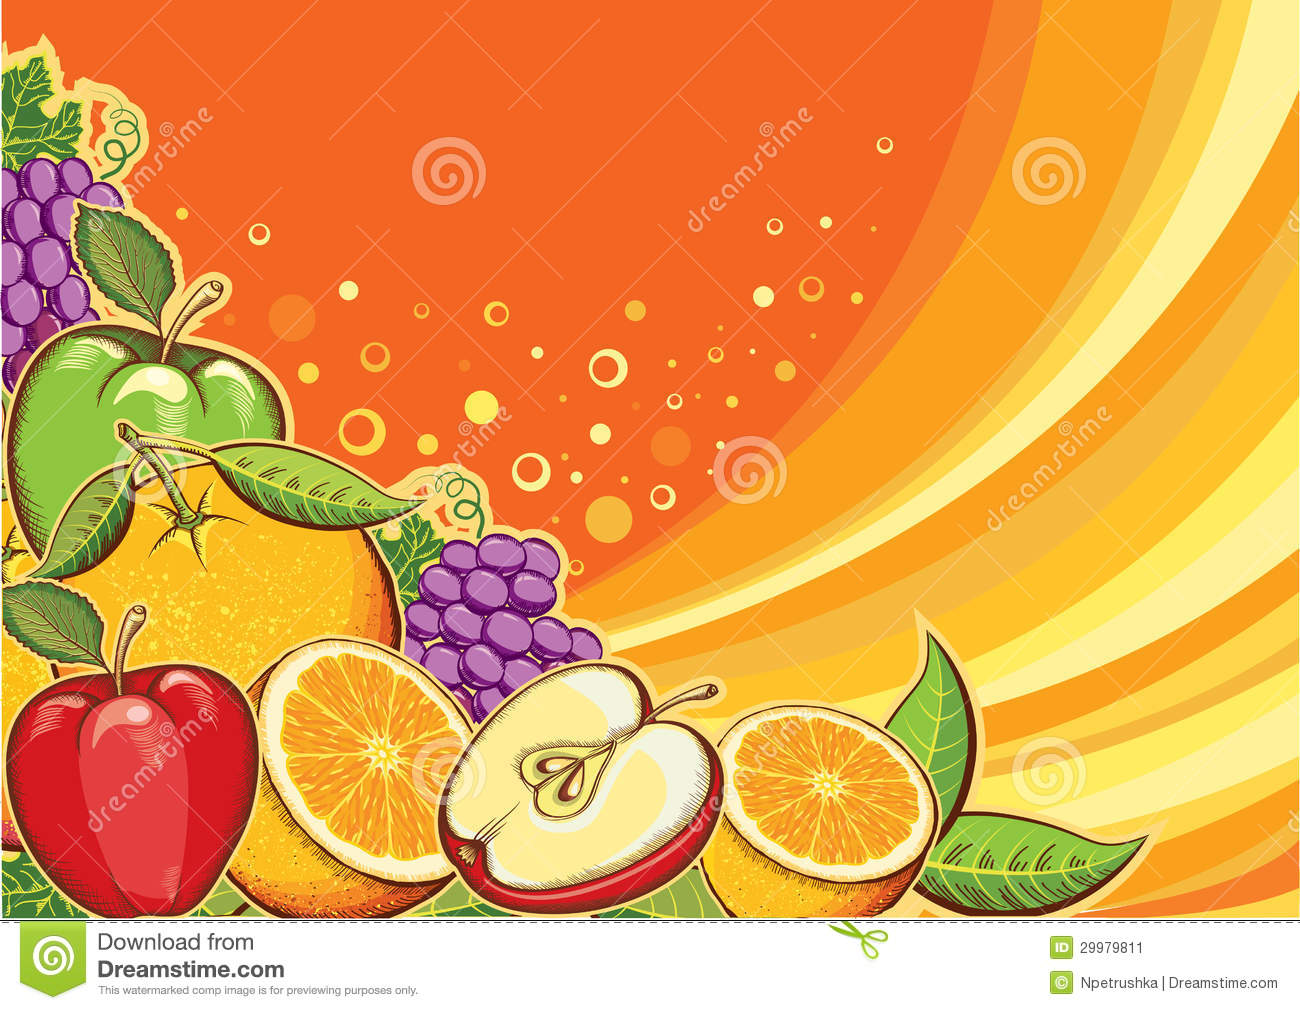 Fruits Background.Vector Color Illustration For De Stock Image - Image ...